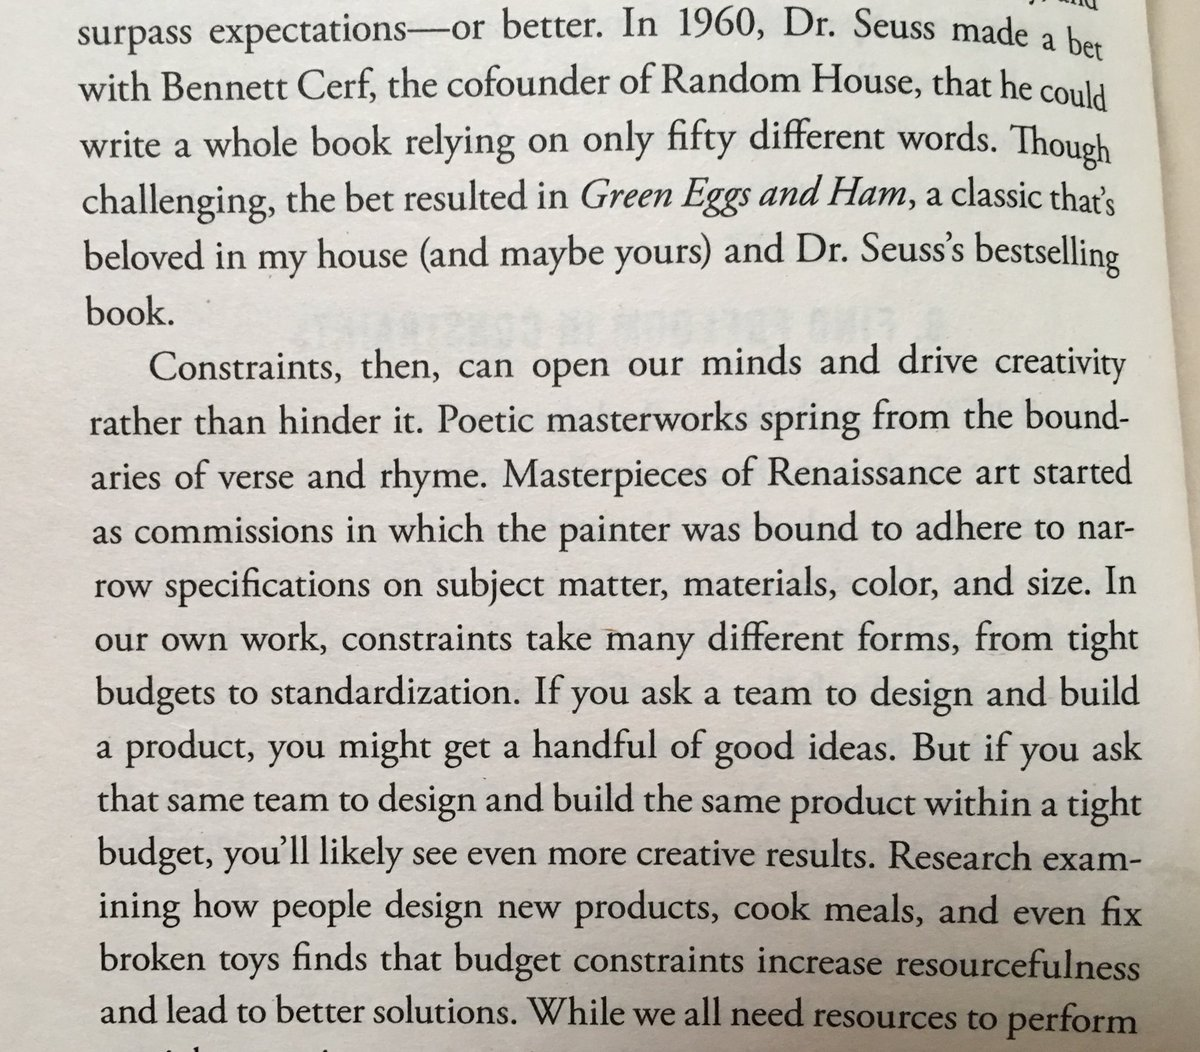 On the power of constraints